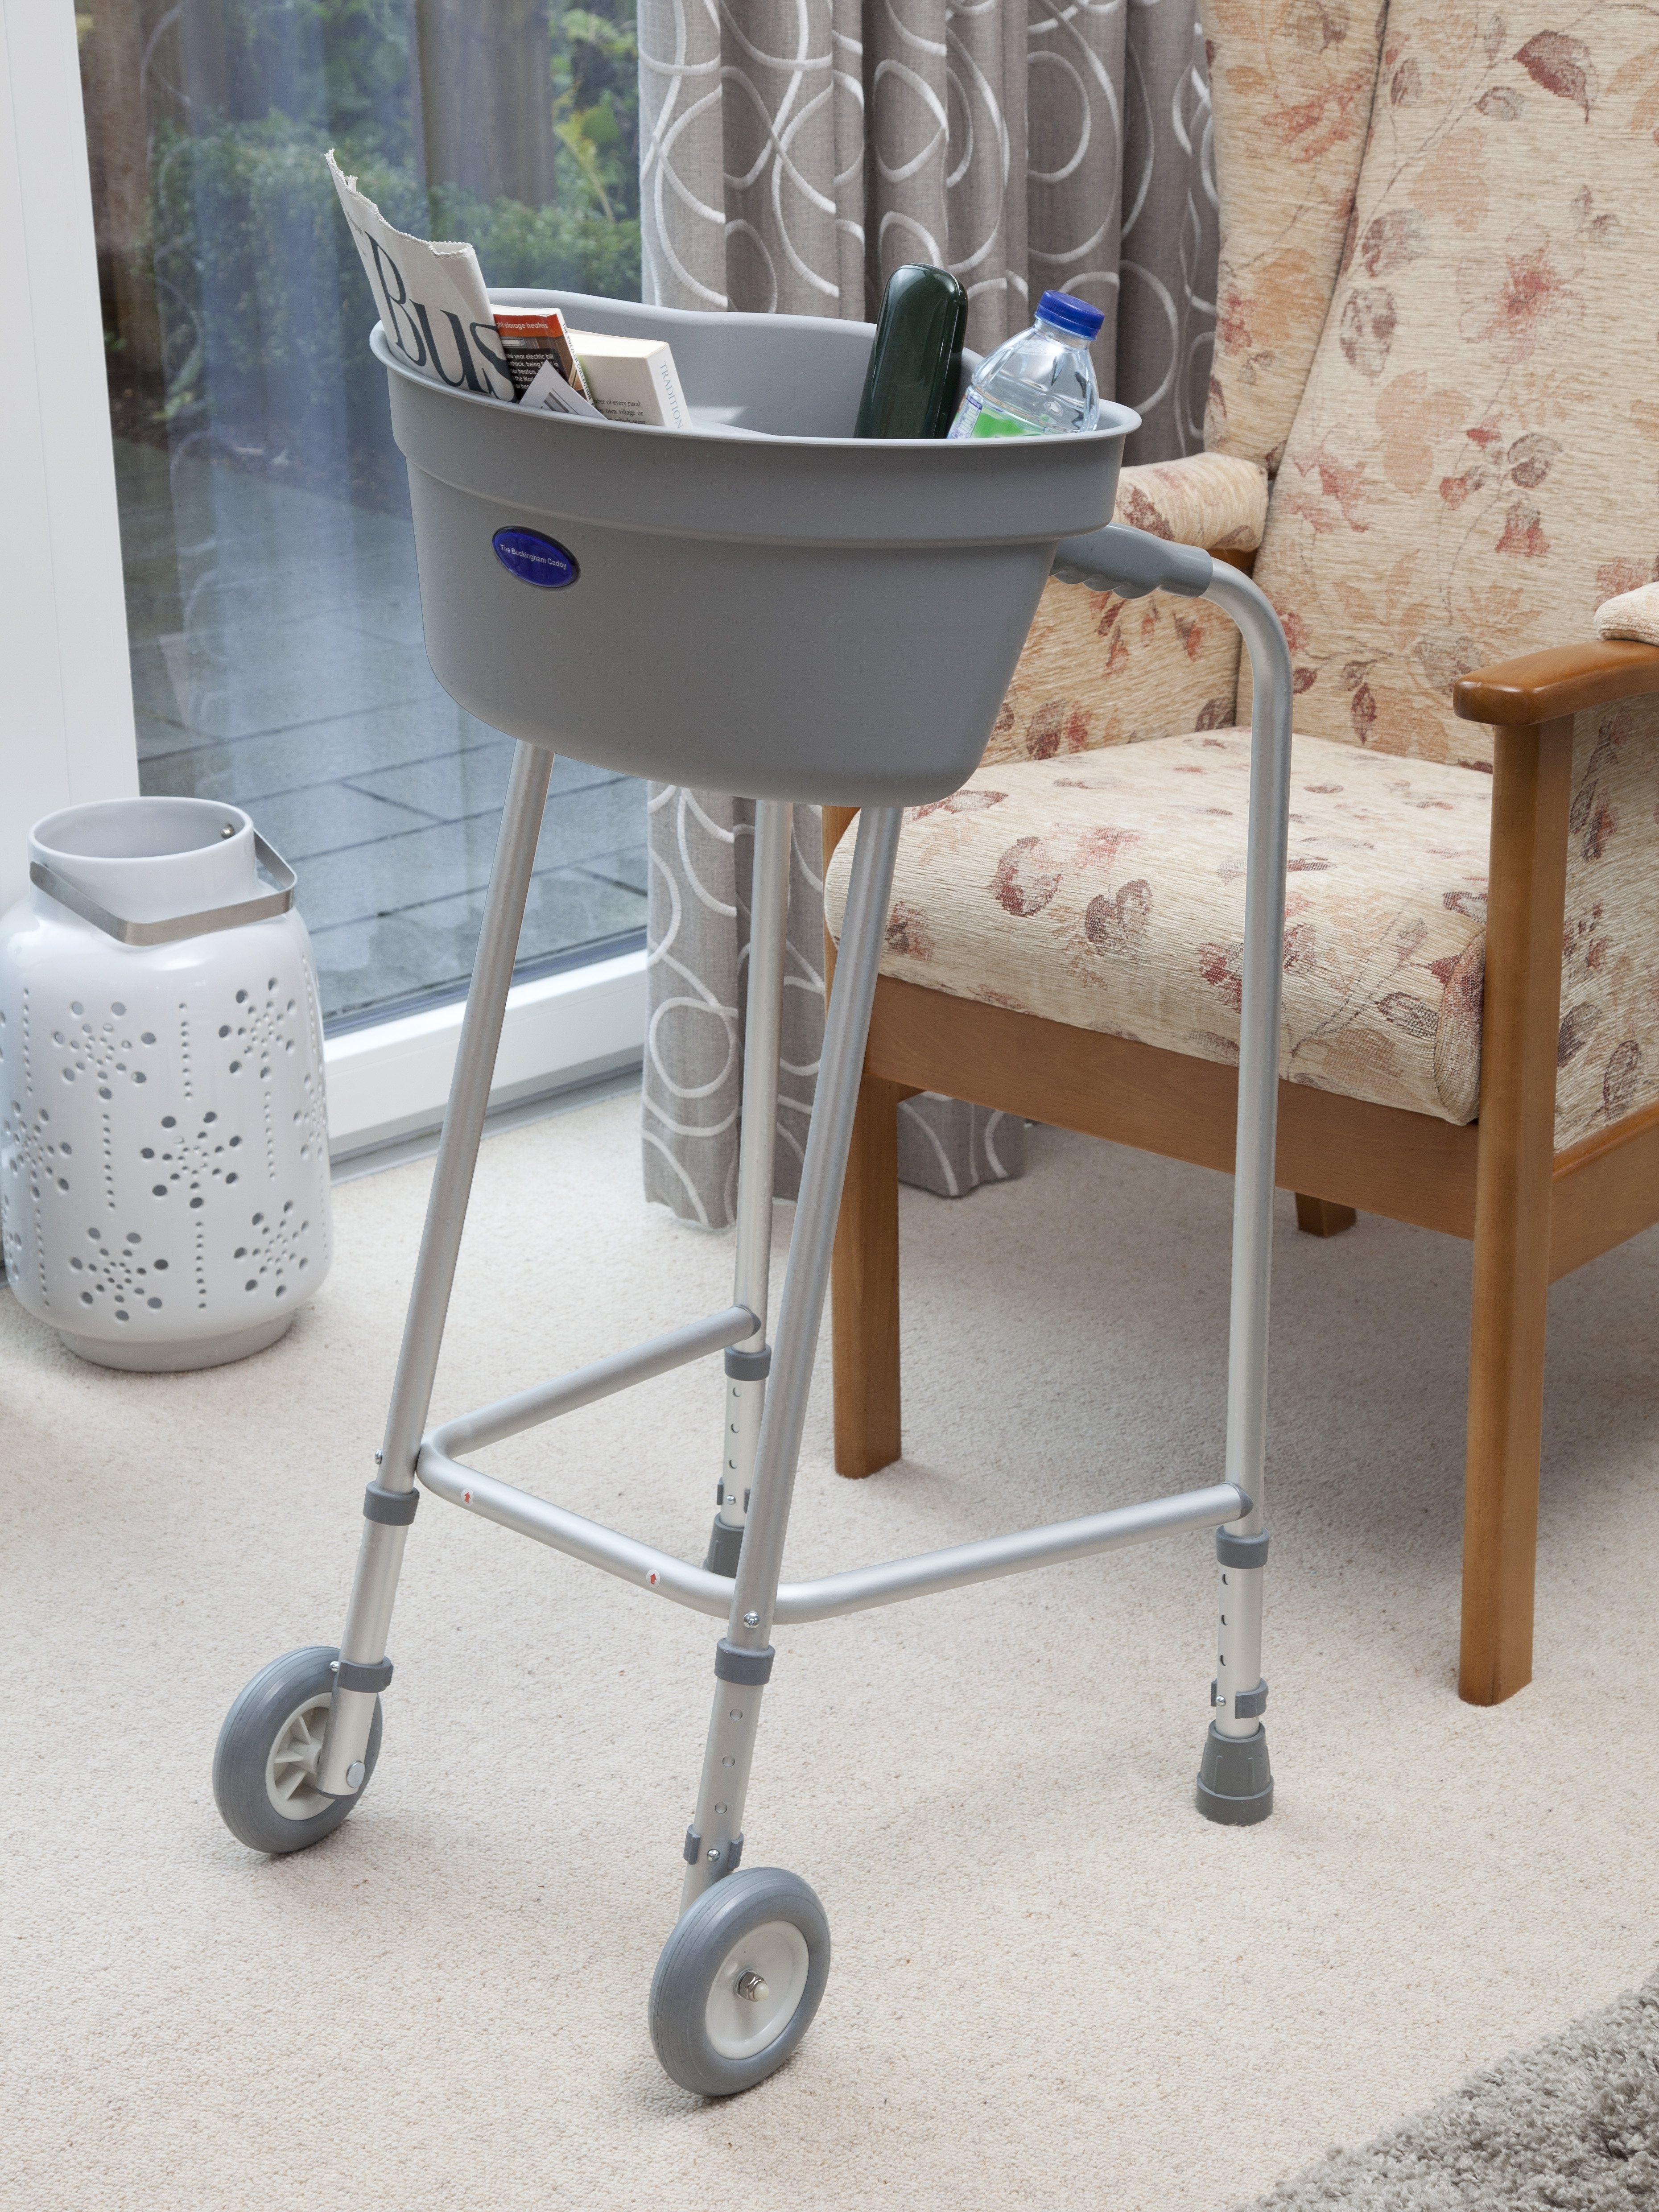 Buckingham Caddy - plastic tray fitted to the top of a walking frame